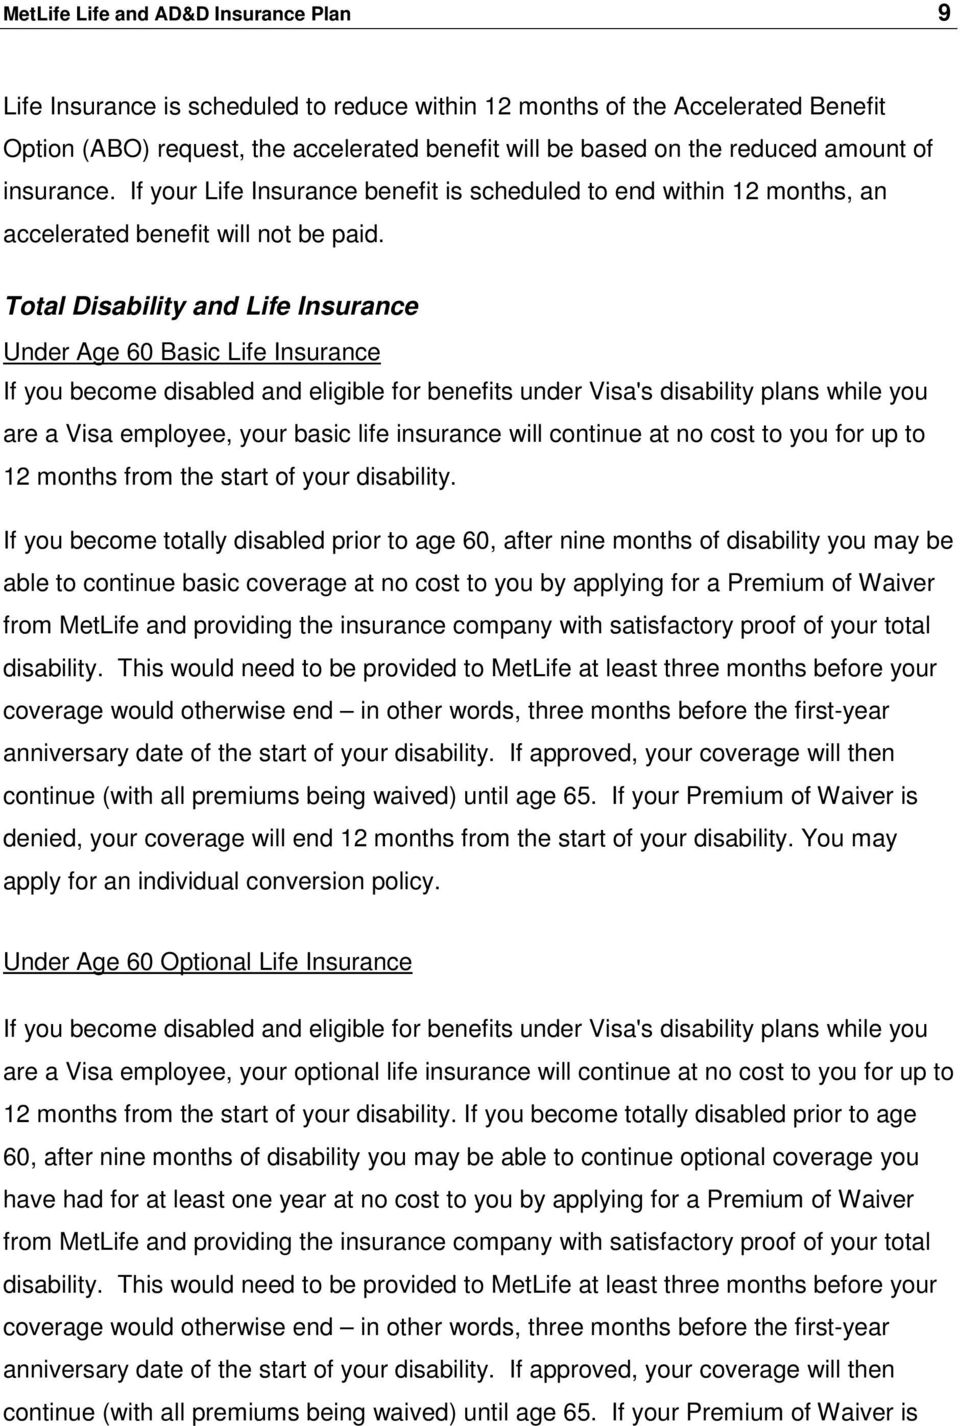 Total Disability and Life Insurance Under Age 60 Basic Life Insurance If you become disabled and eligible for benefits under Visa's disability plans while you are a Visa employee, your basic life